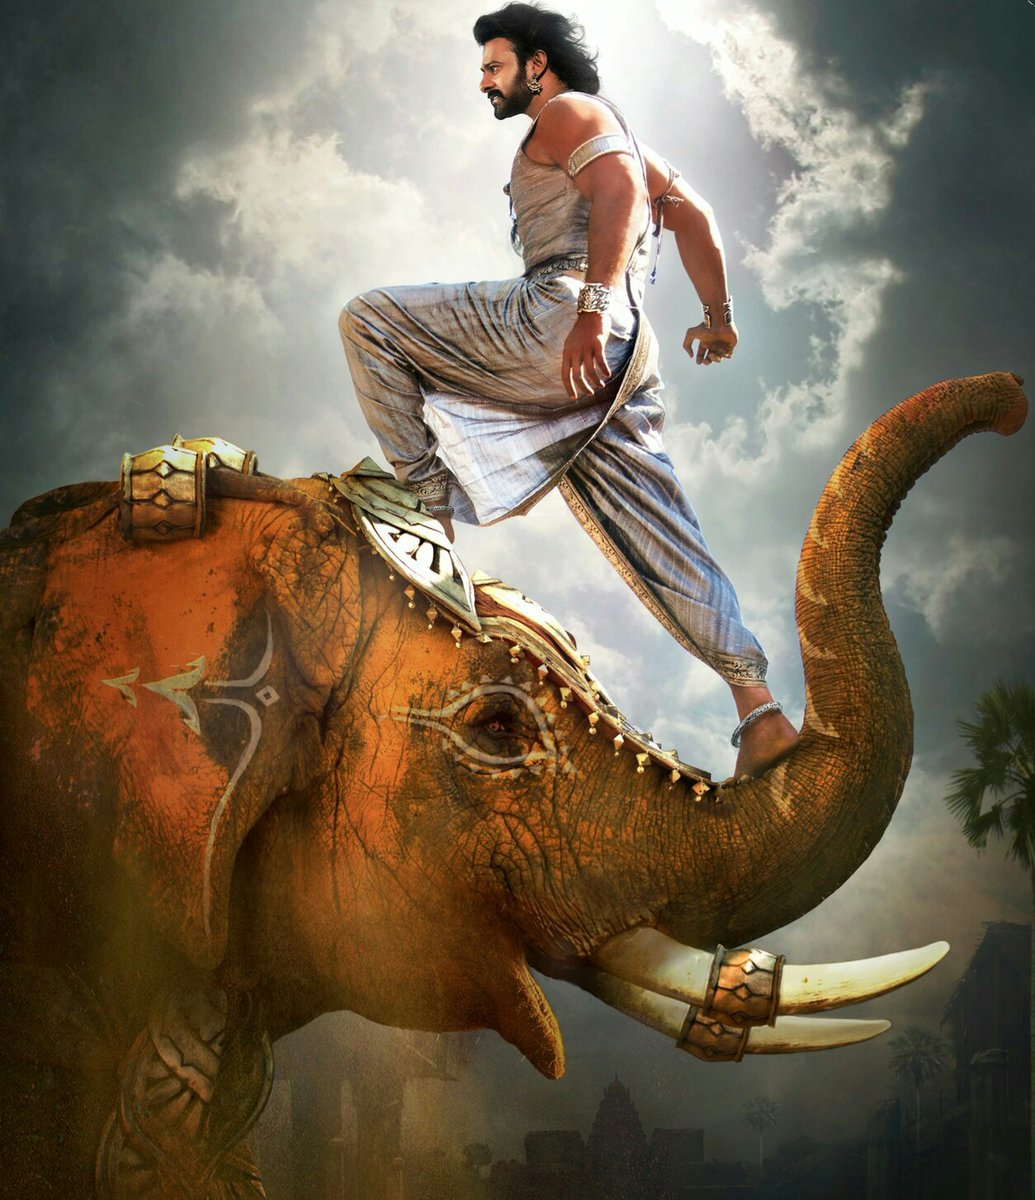 Wallpaper download bahubali - Bahubali Prabhas On Elephant